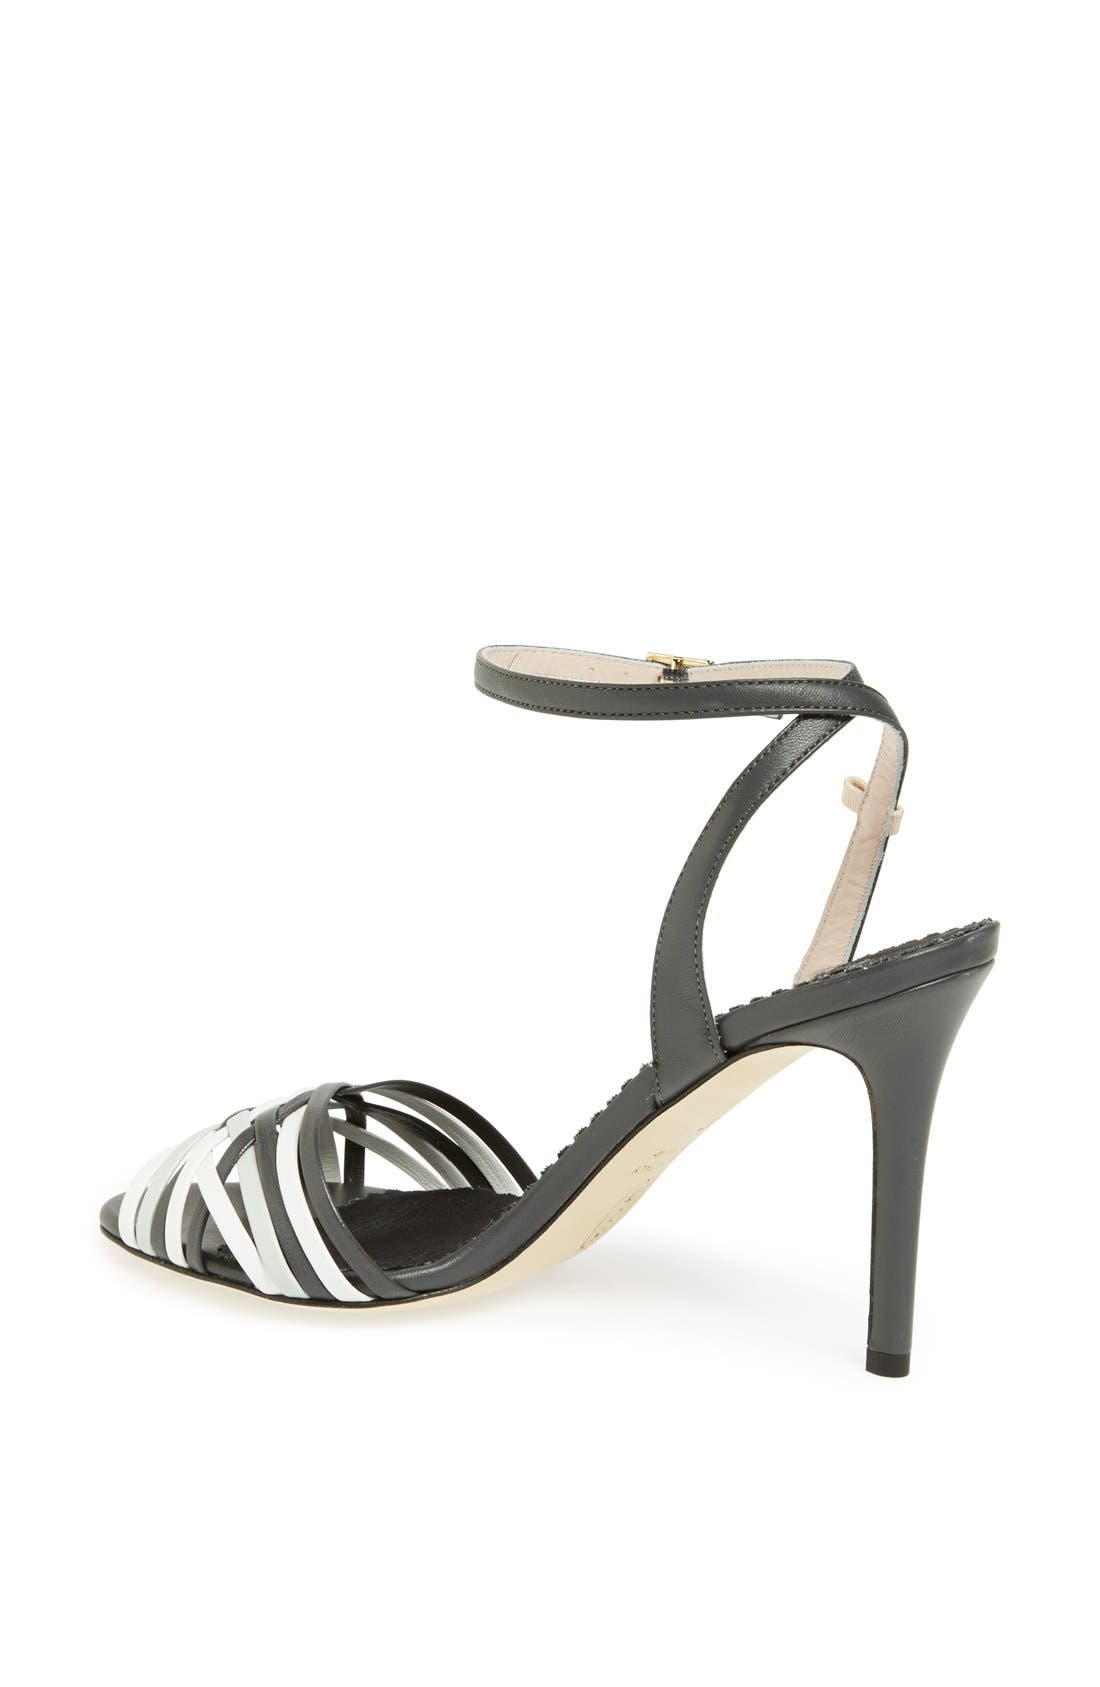 SJP 'Maud' Sandal,                             Alternate thumbnail 3, color,                             001